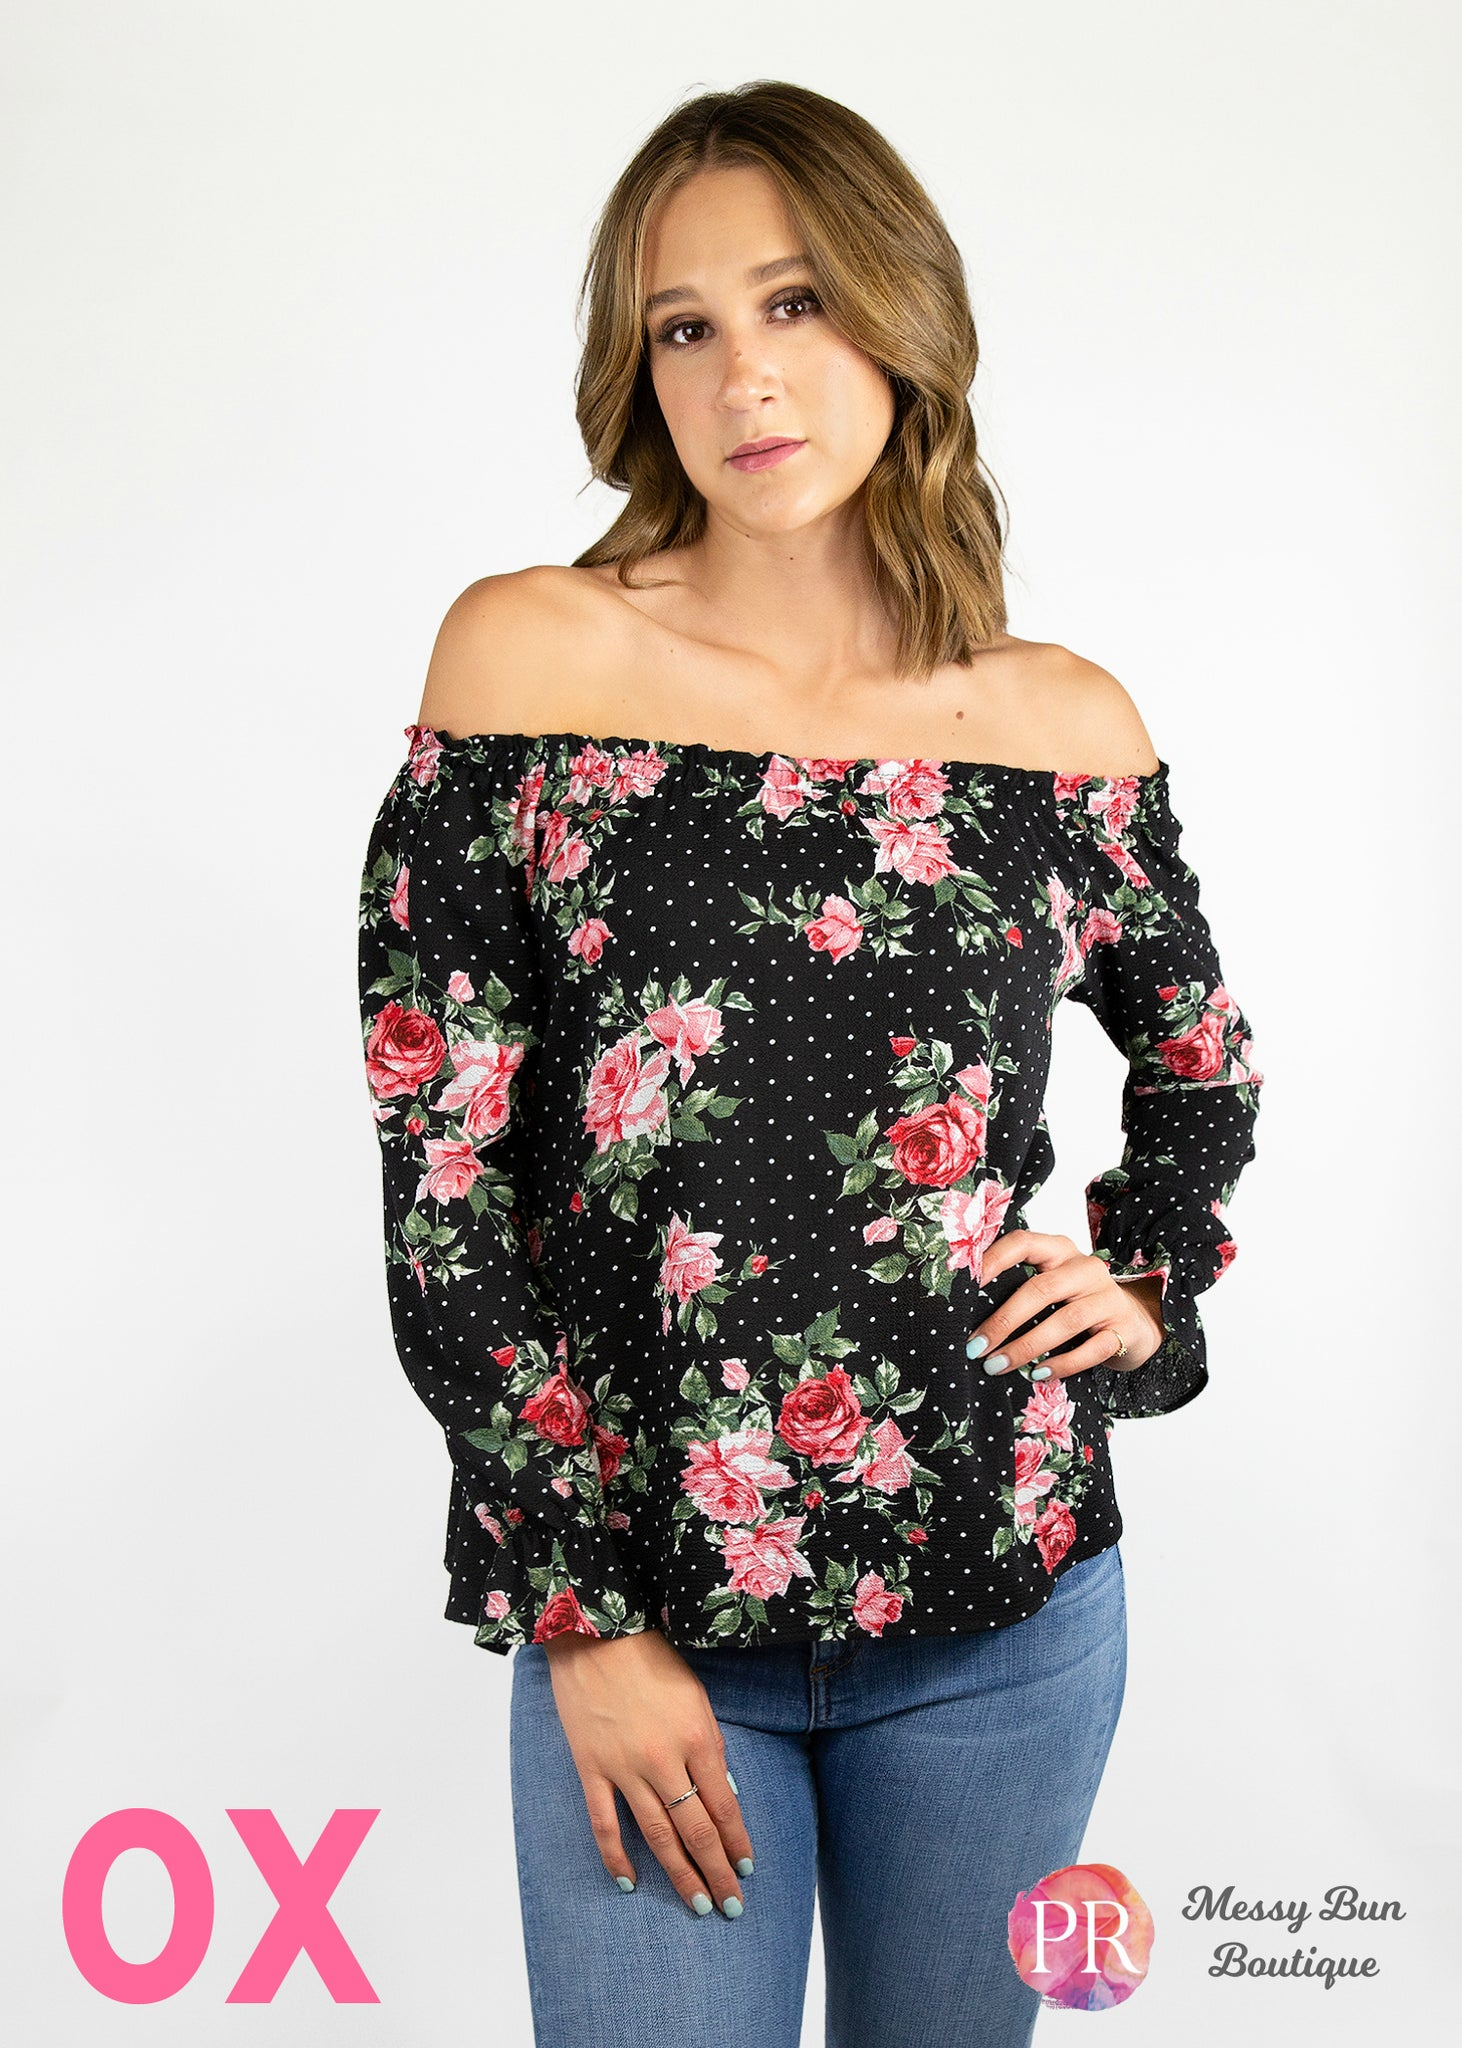 0X Black Floral Paisley Raye Willow Top